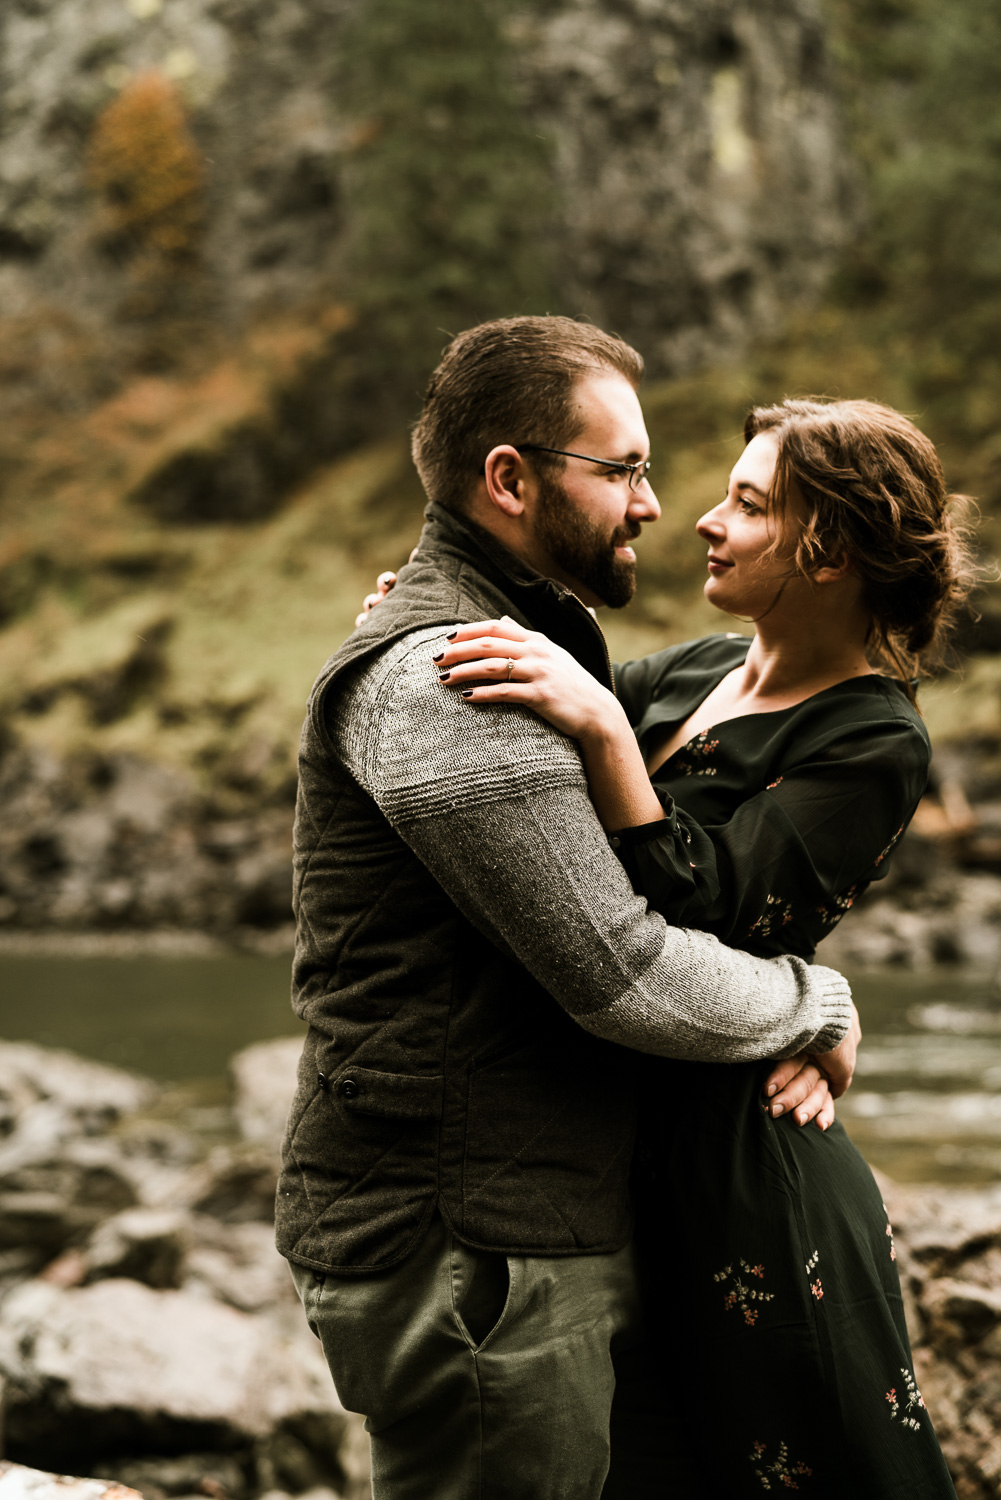 A Picturesque PNW Engagement Session | Snoqualmie Falls | Seattle Wedding photographer-15.jpg